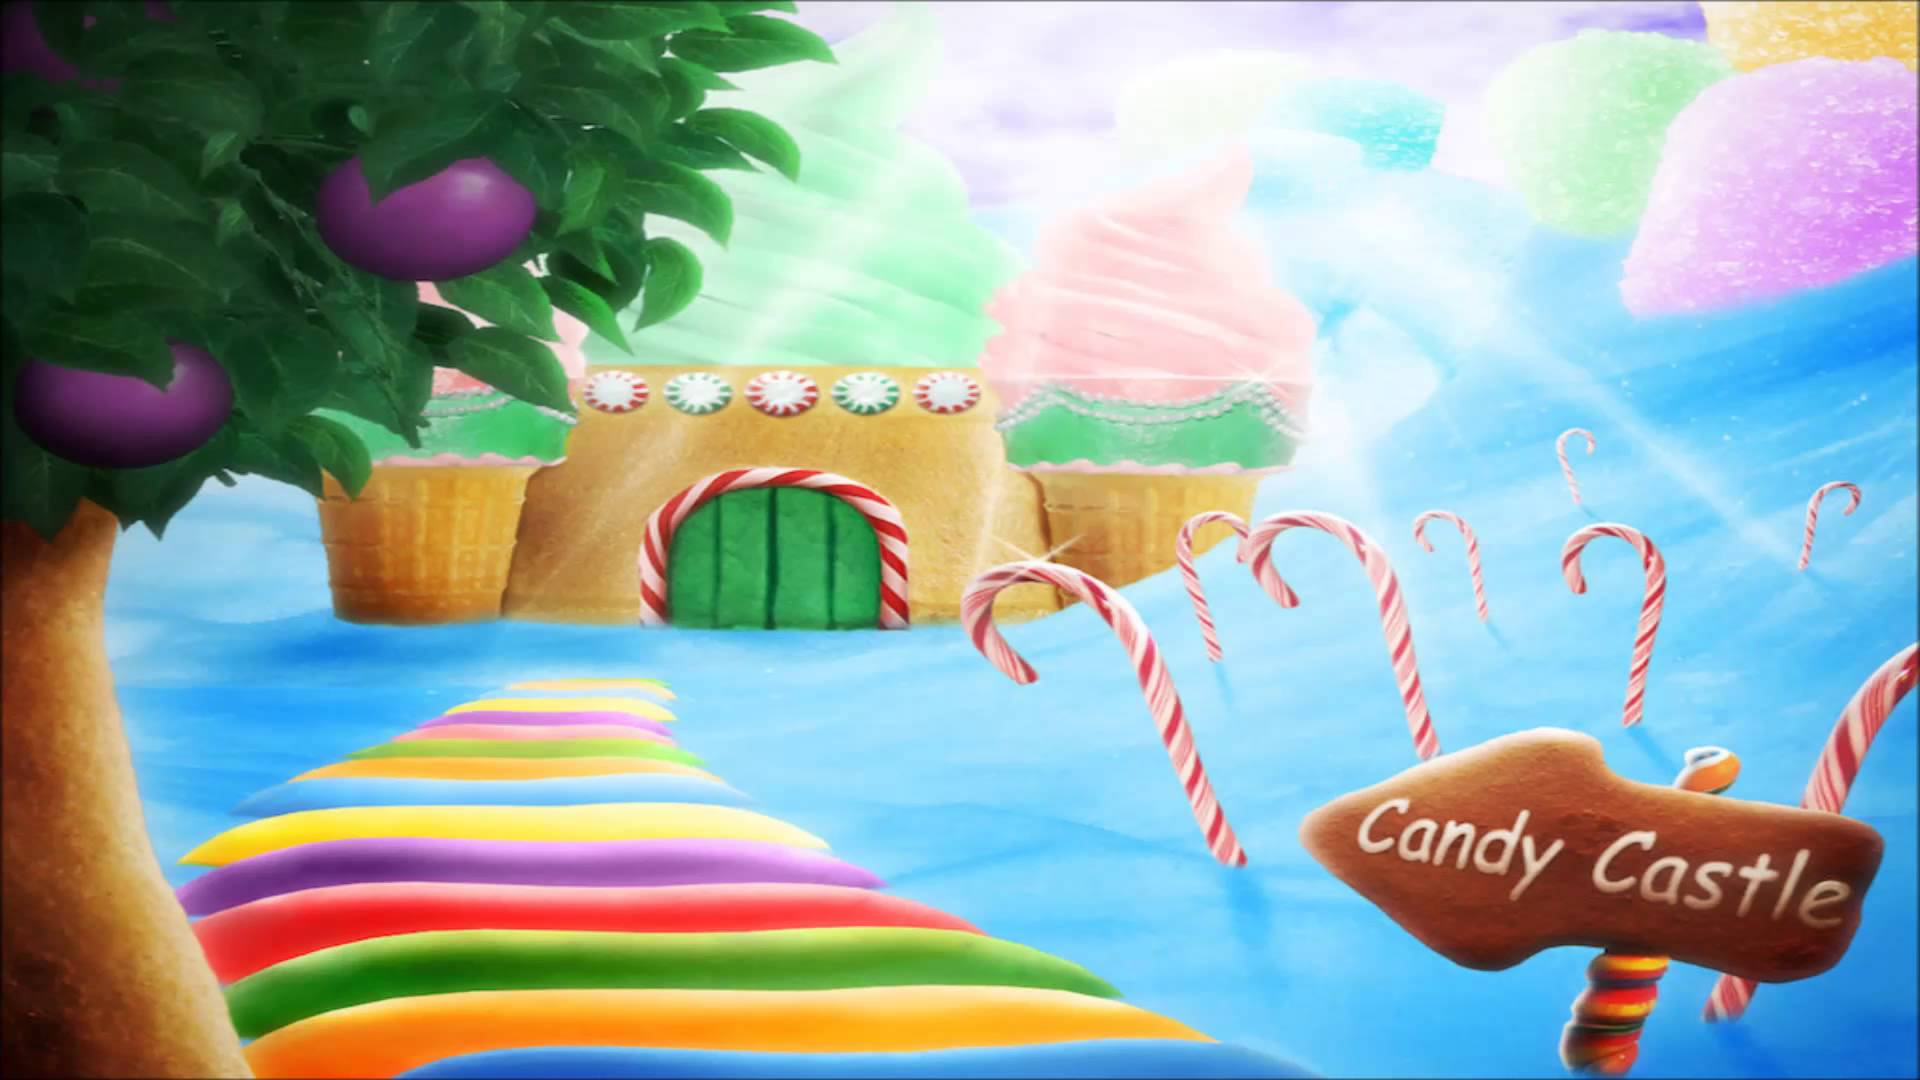 visit to fantasy candy land Tobu – candyland [free download] mel february 9, 2015 free download progressive house tobu is very likely latvia's best progressive house producer this is demonstrated in his latest work .